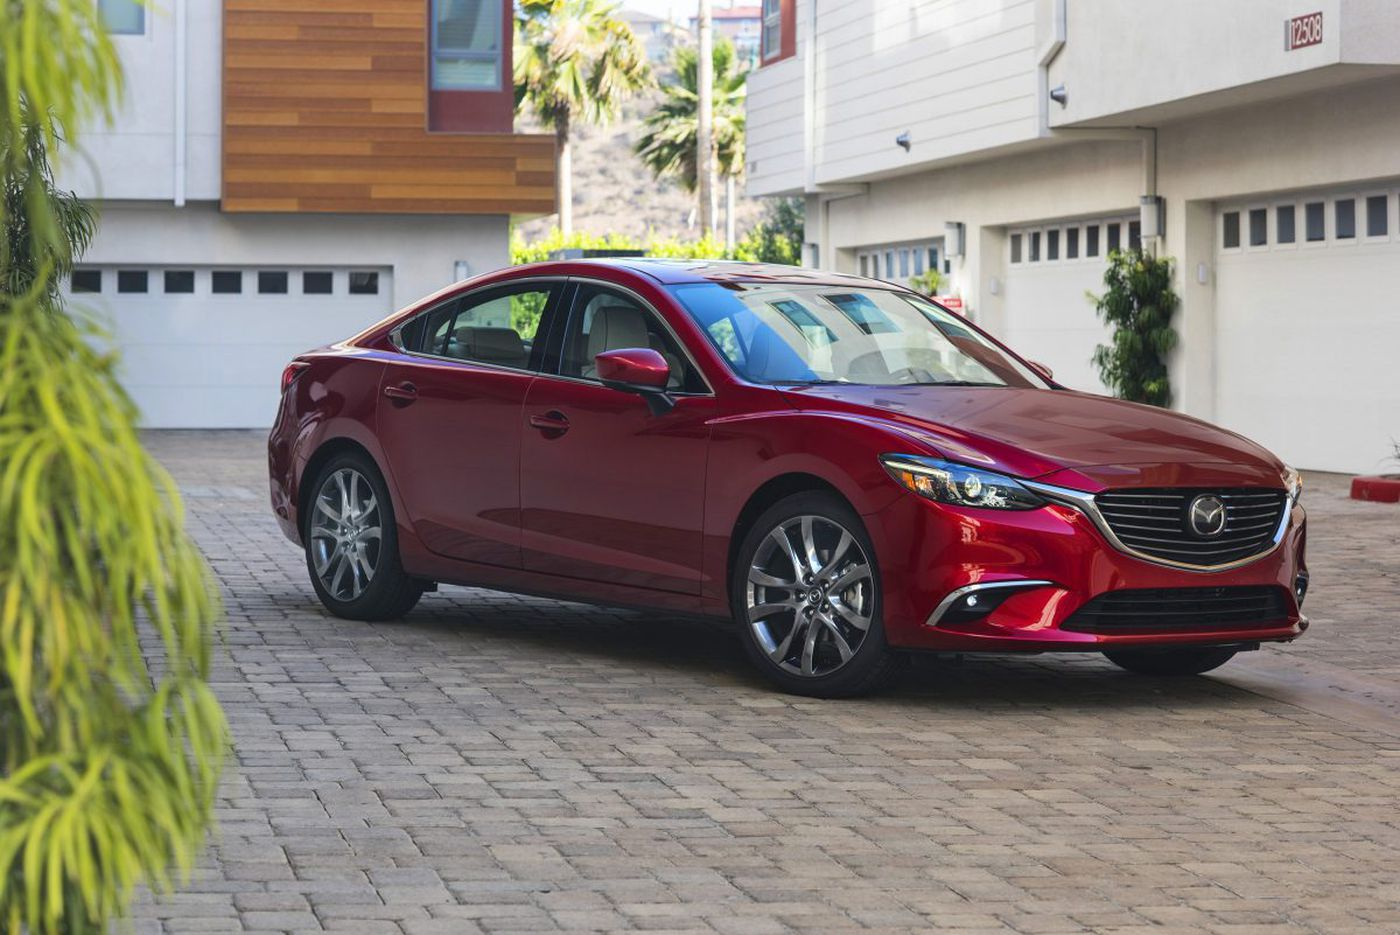 2017 Mazda6: Little changed, and that's a good thing